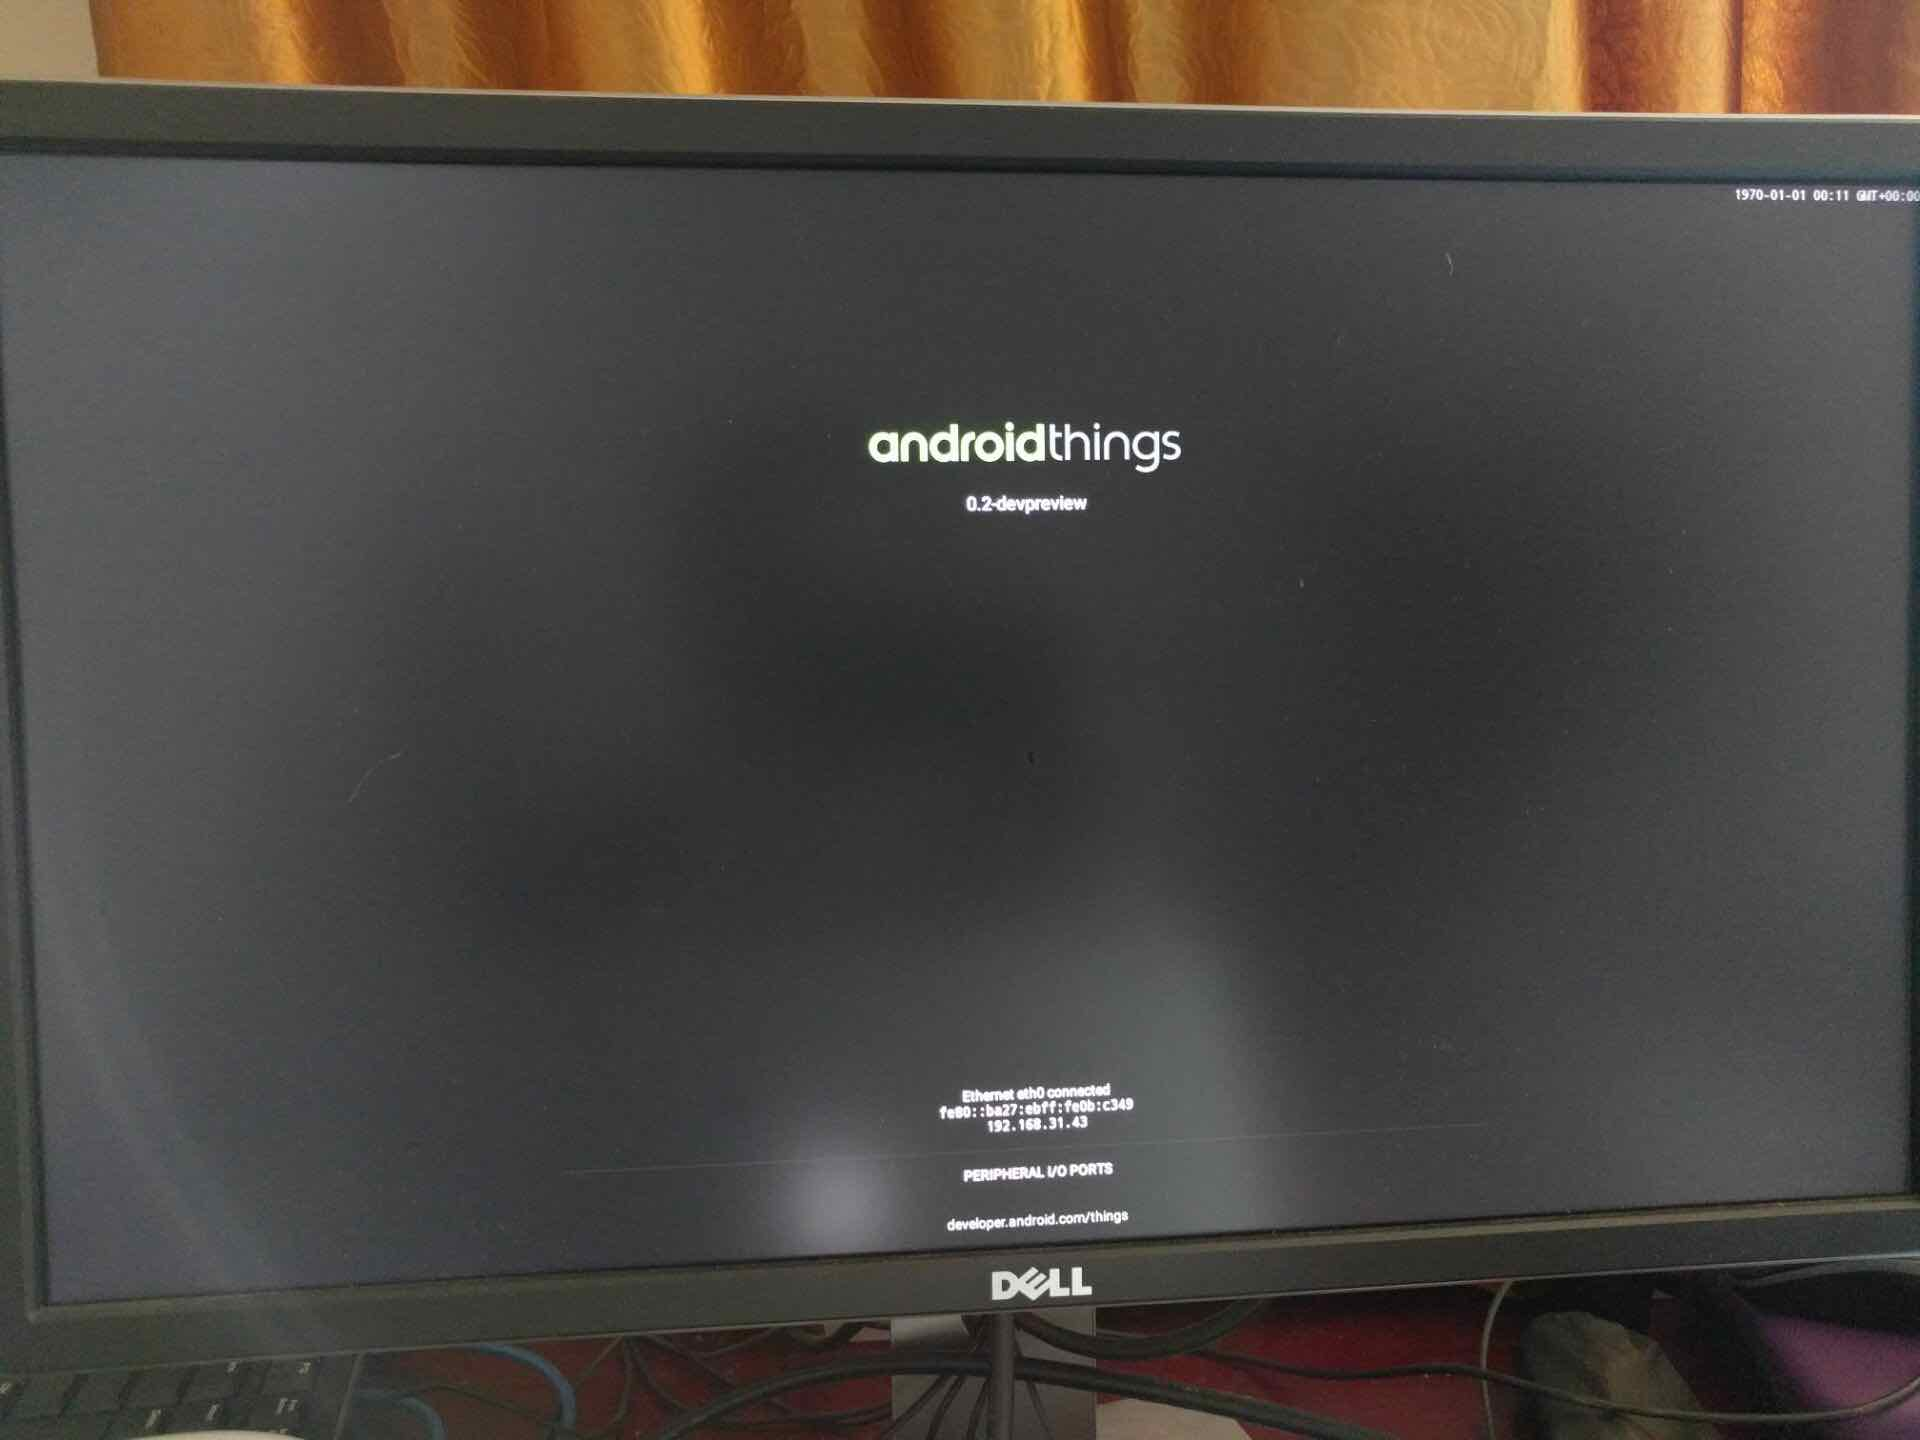 AndroidThings 启动成功